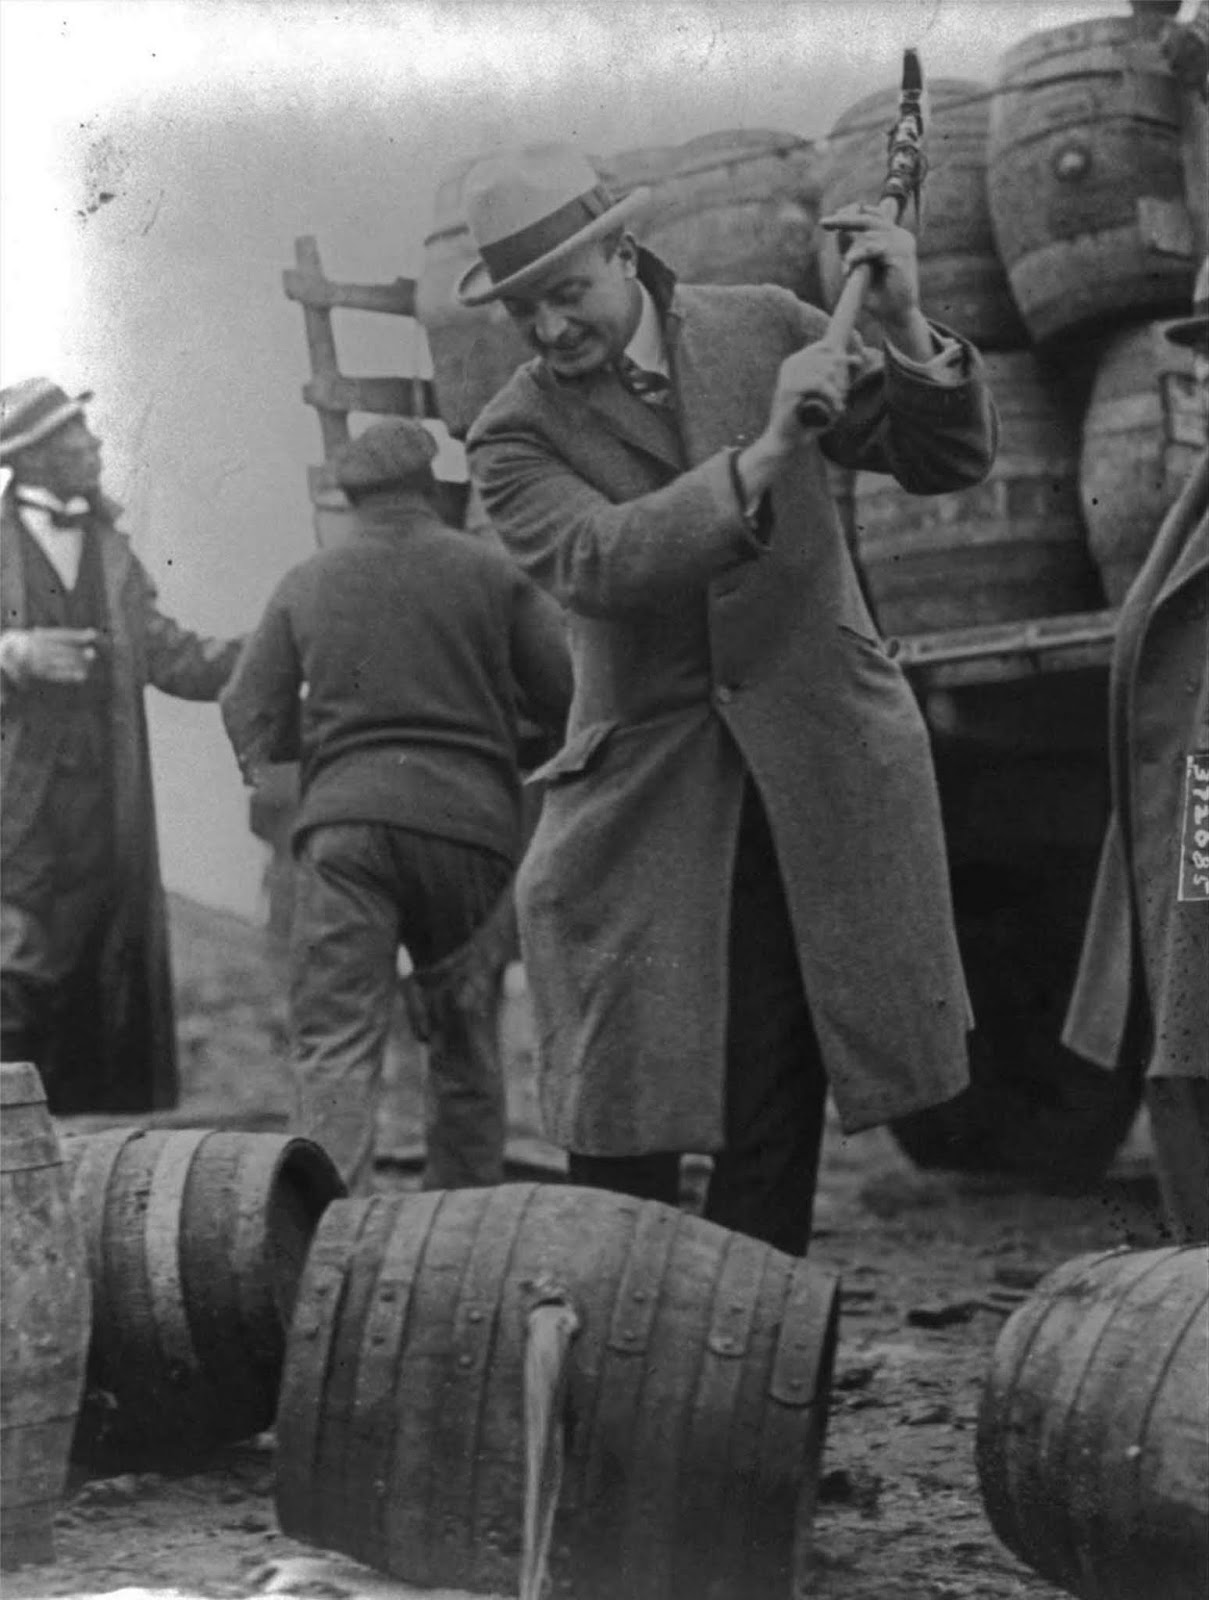 An FBI Officer breaks a confiscated barrel of beer. 1924.